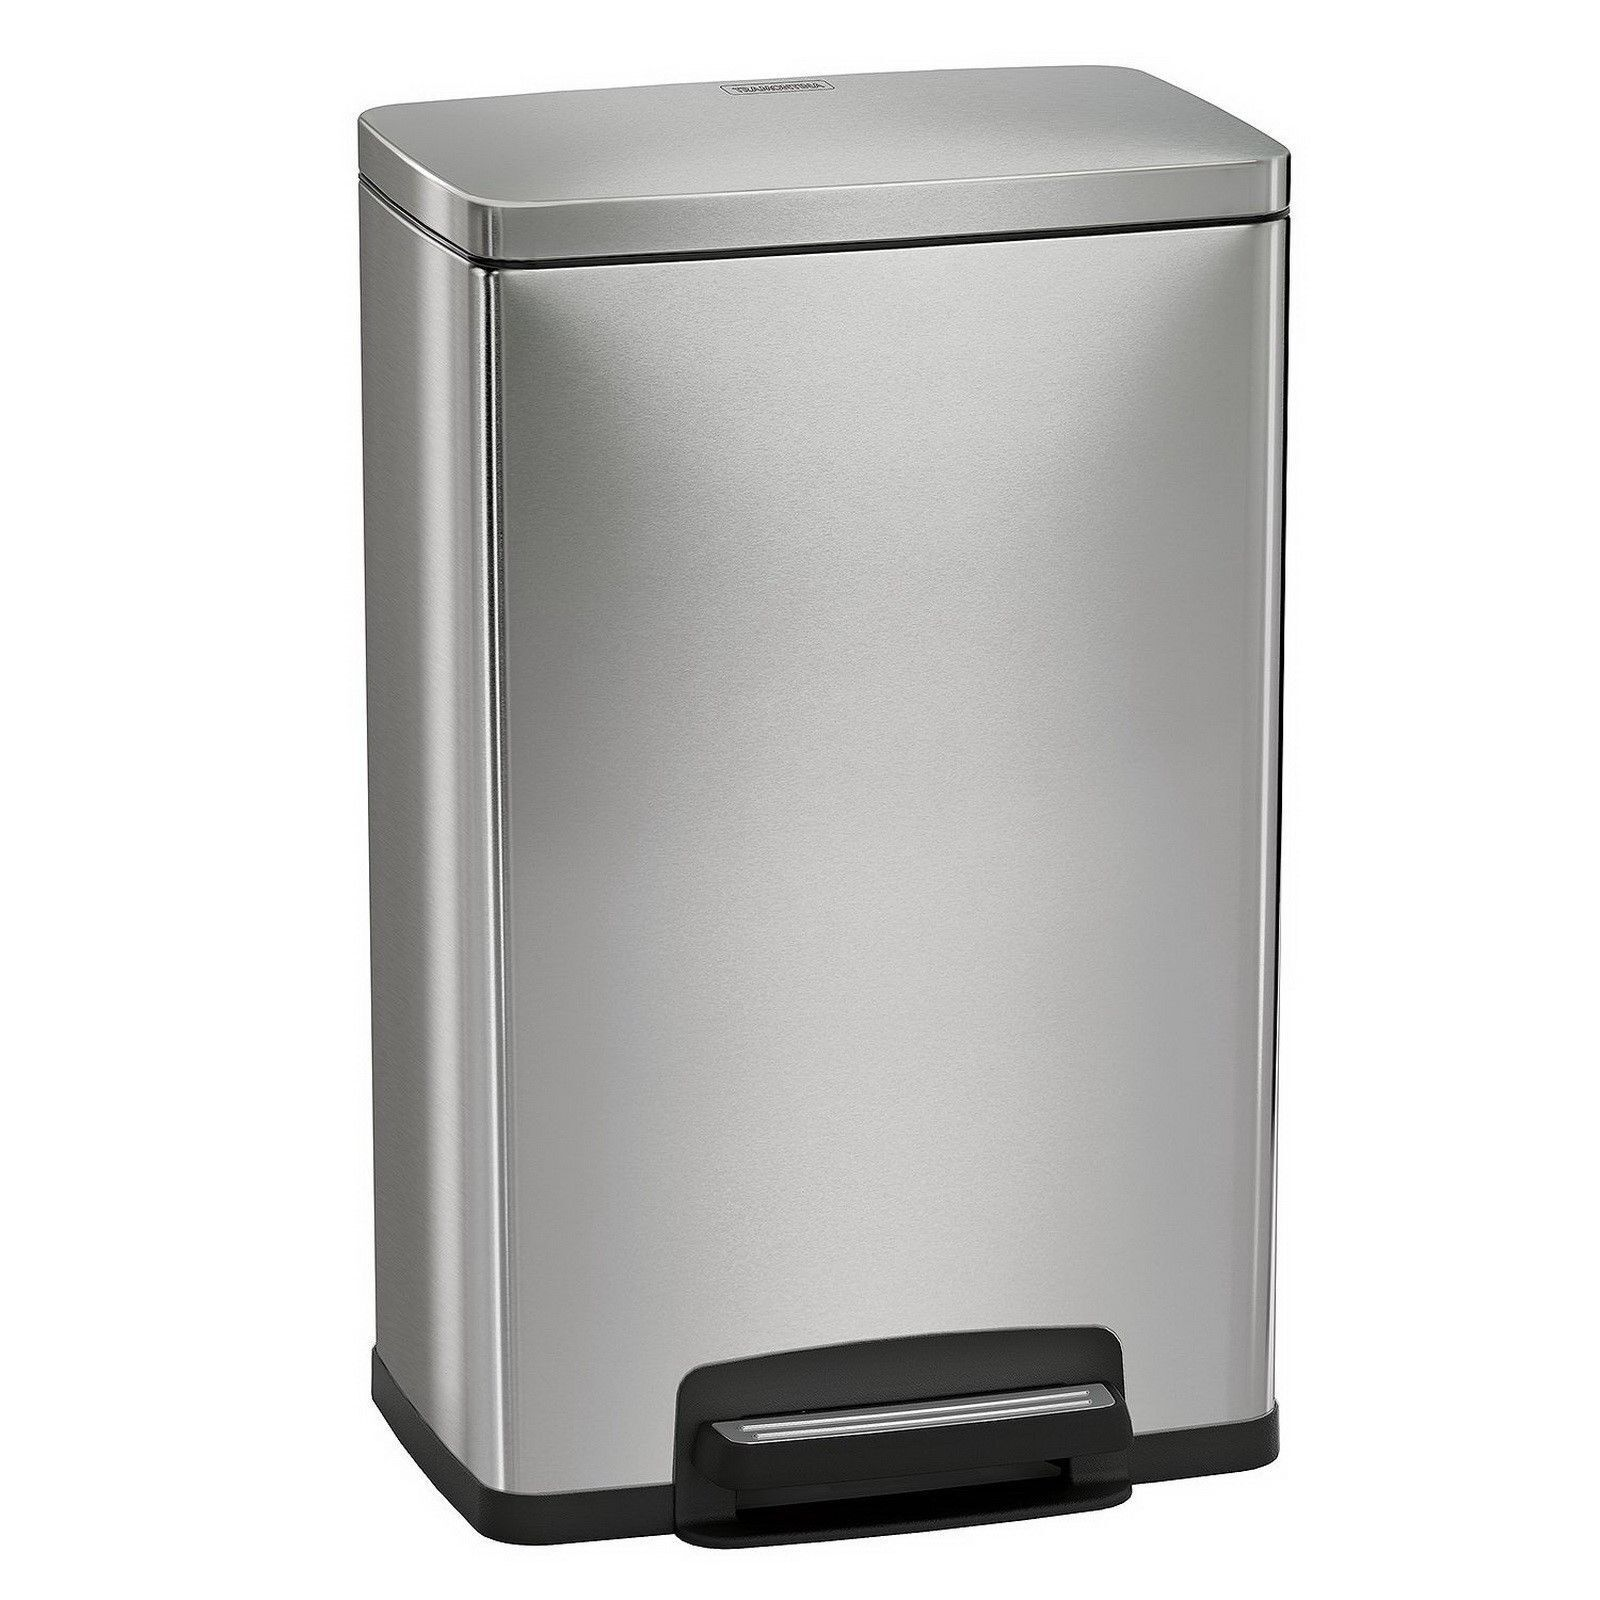 Tramontina 13 Gallon Step Trash Can Stainless Steel Includes 2 ...